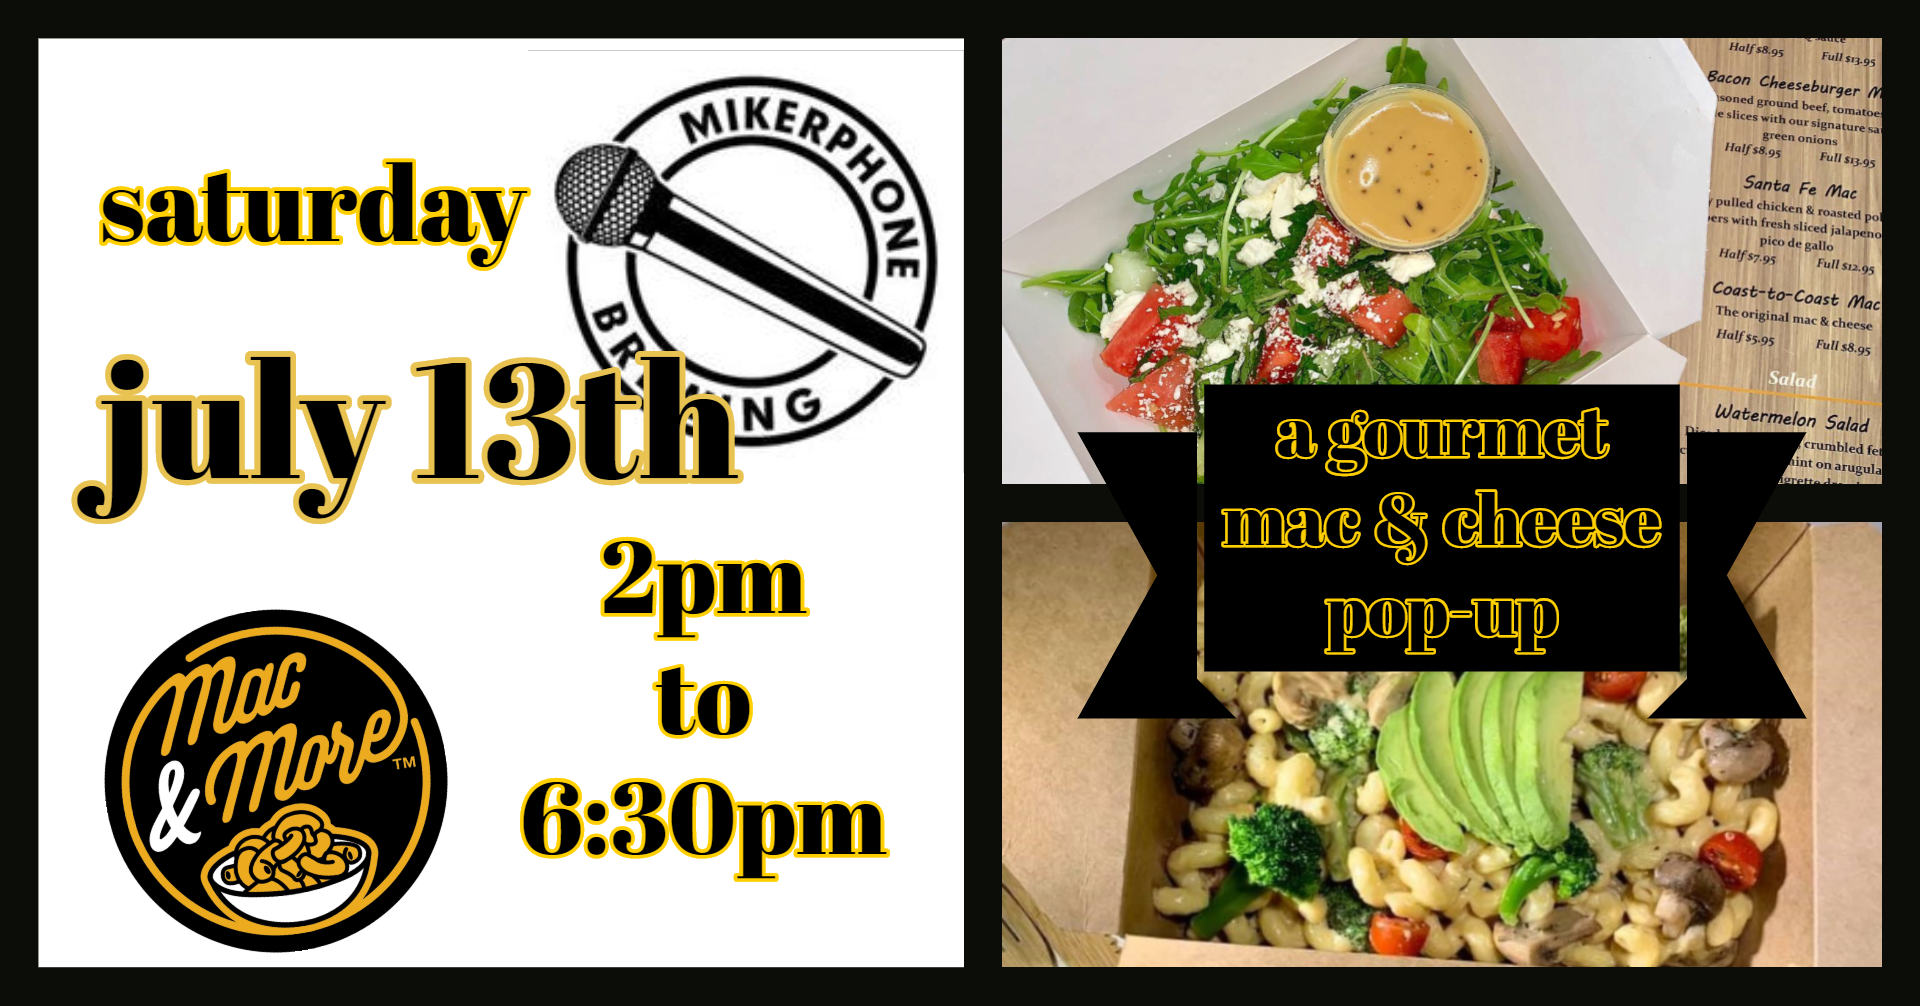 Saturday July 13th from 2-6:0pm. Serving gourmet mac & cheese and salads. Cash or credit accepted!